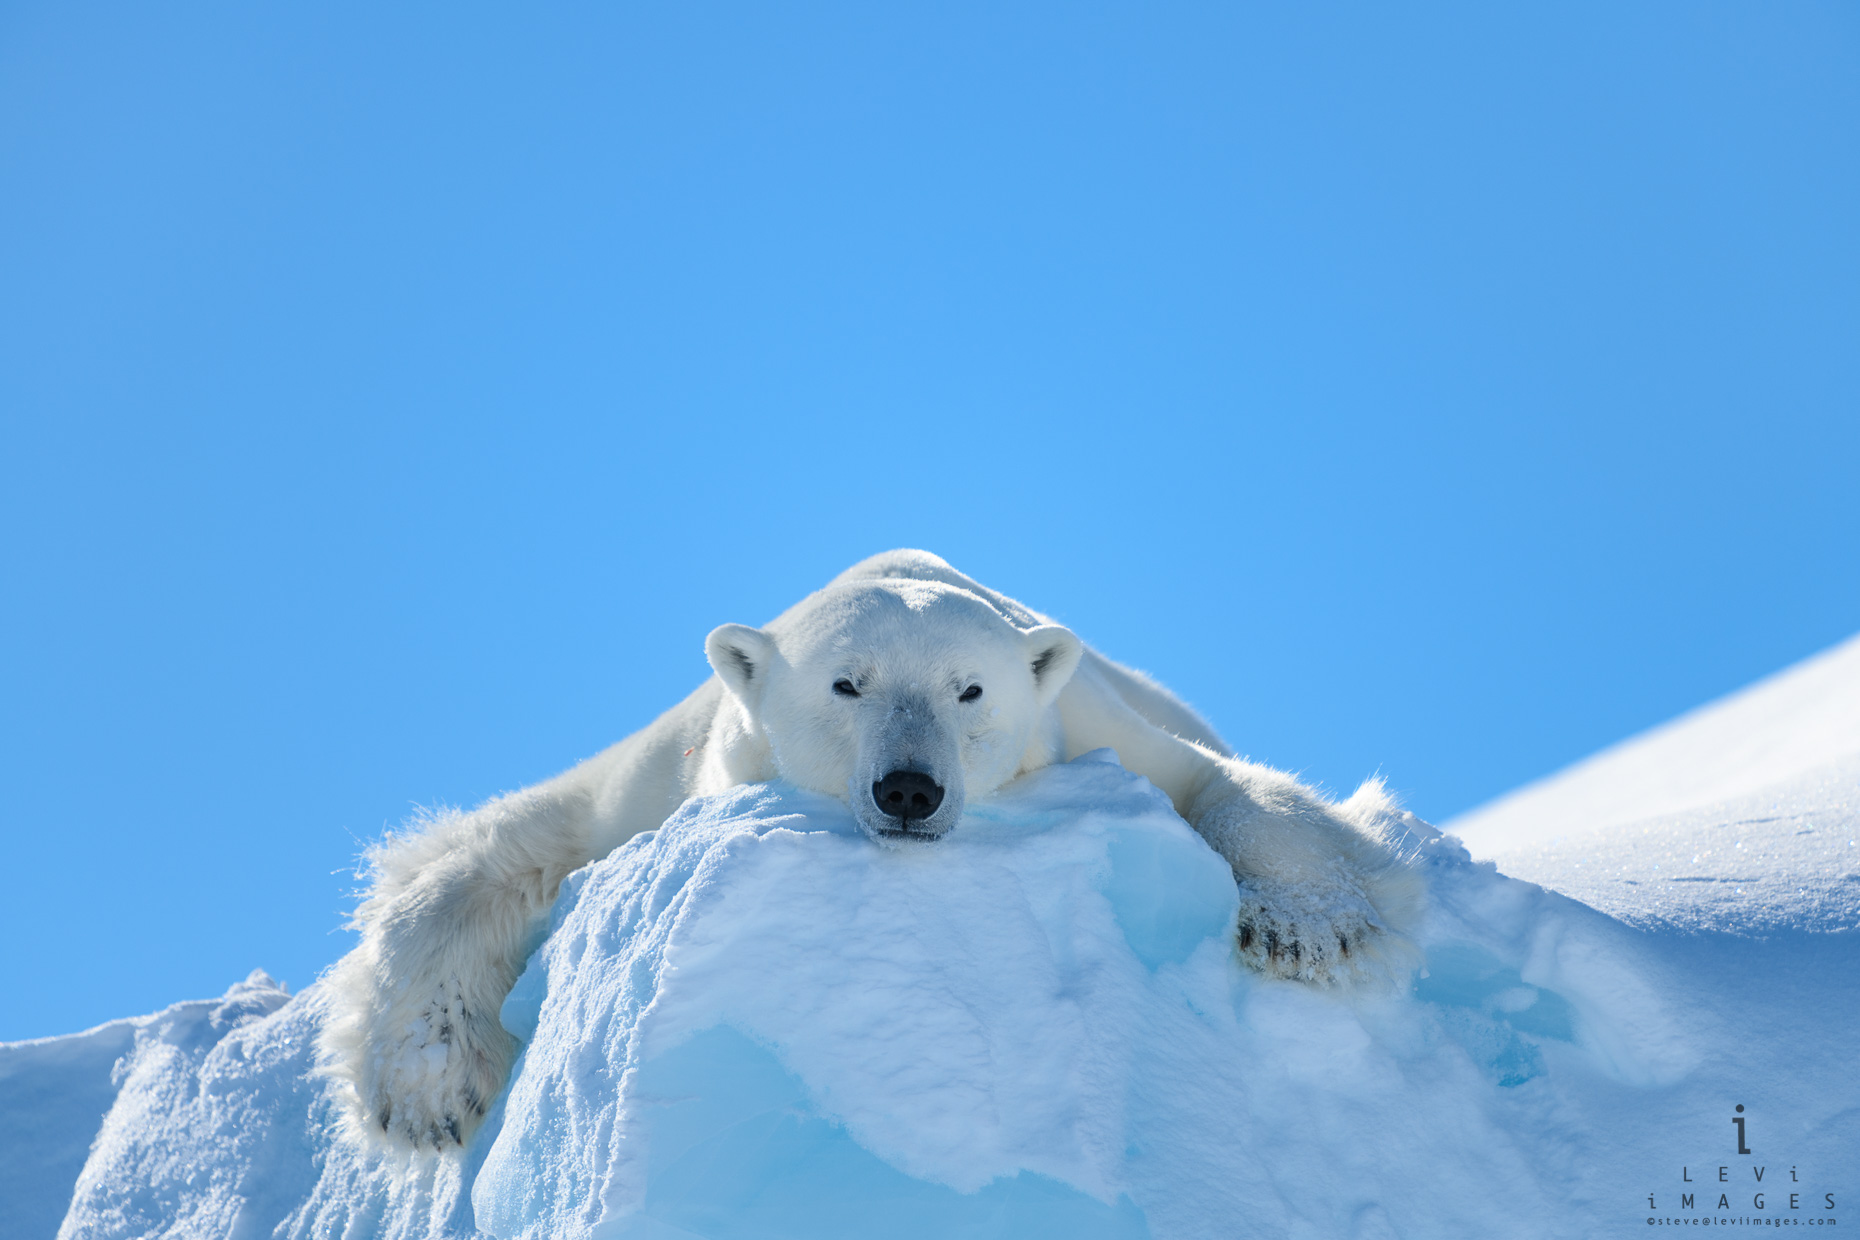 Polar bear (Ursus maritimus) lounging on the edge of an iceberg. Baffin Island, Nunavut, Canada